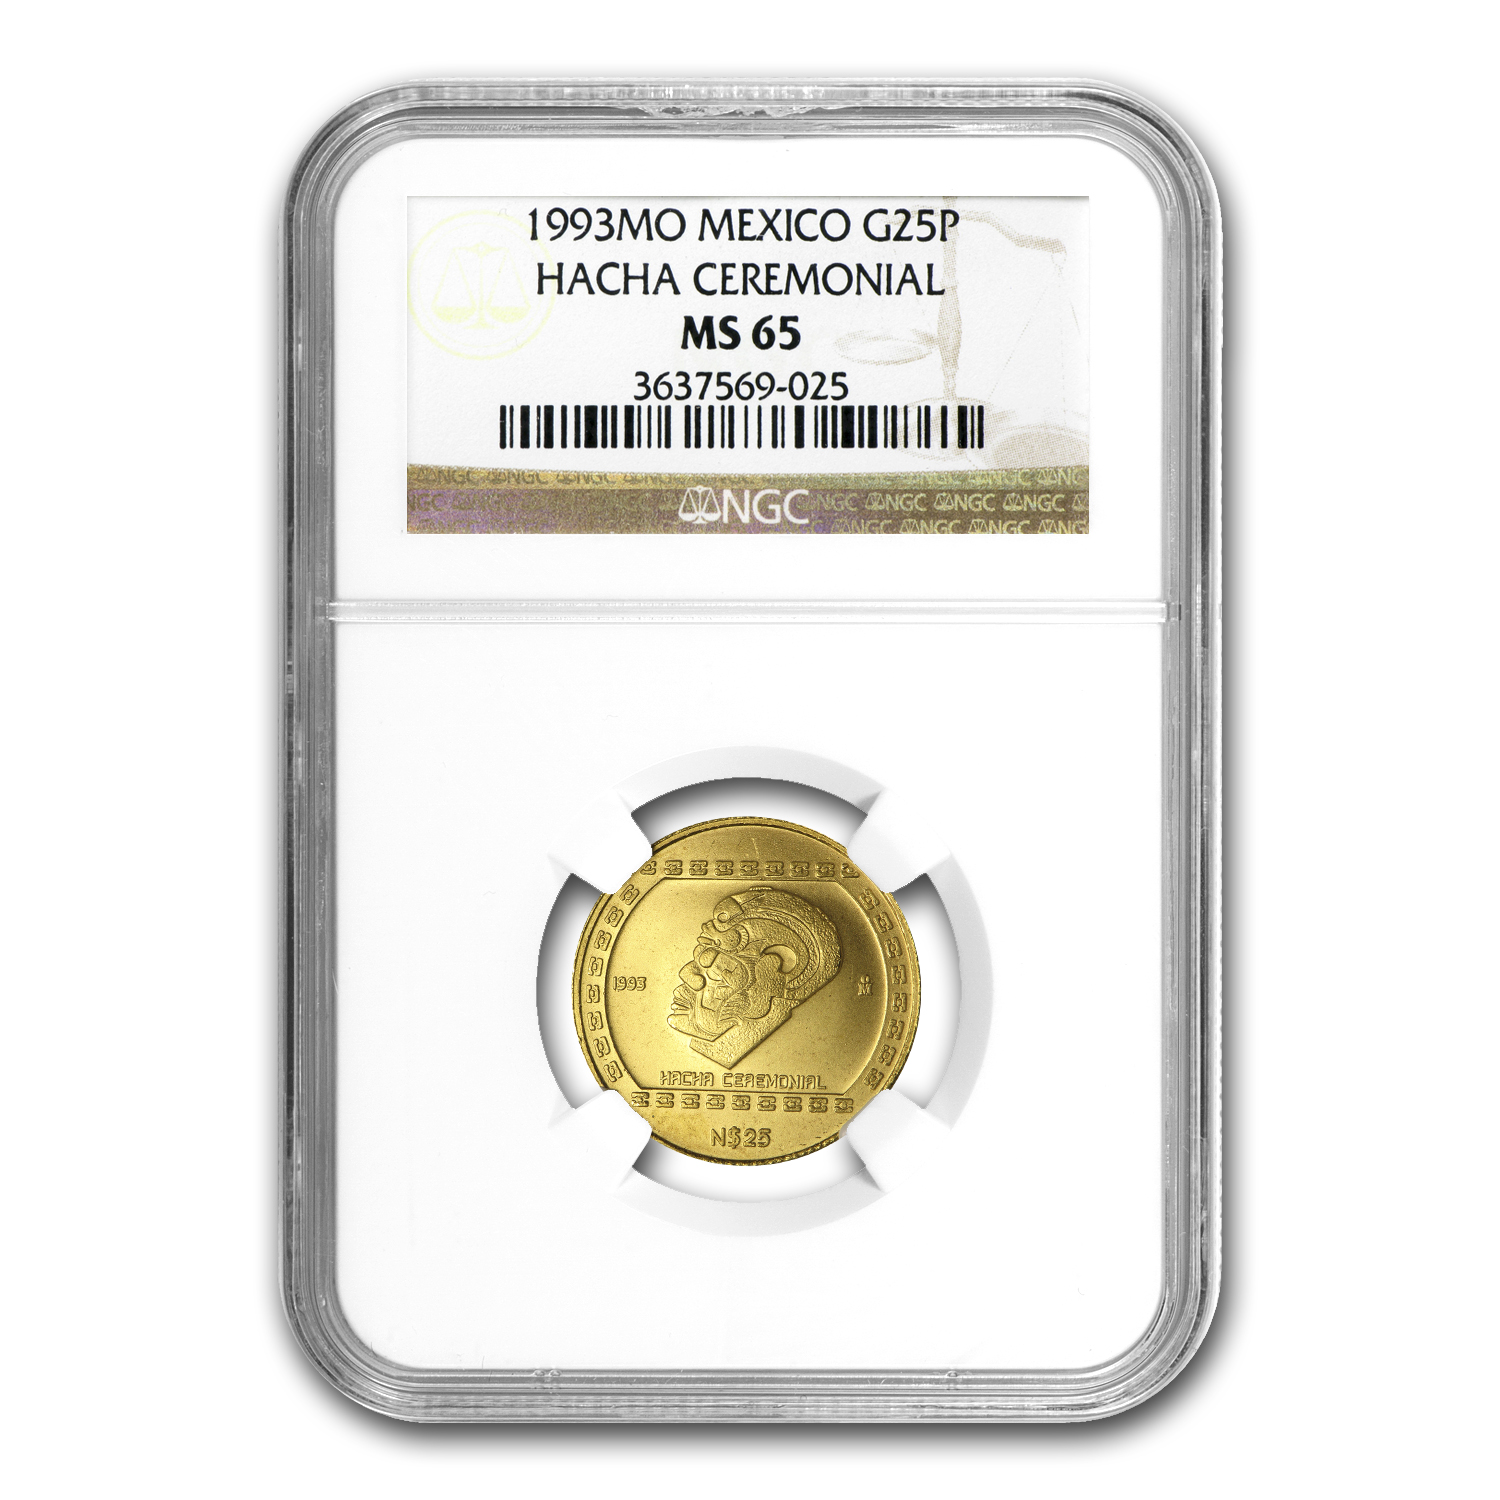 1993 Mexico 25 Pesos Gold Hacha Ceremonial NGC MS-65